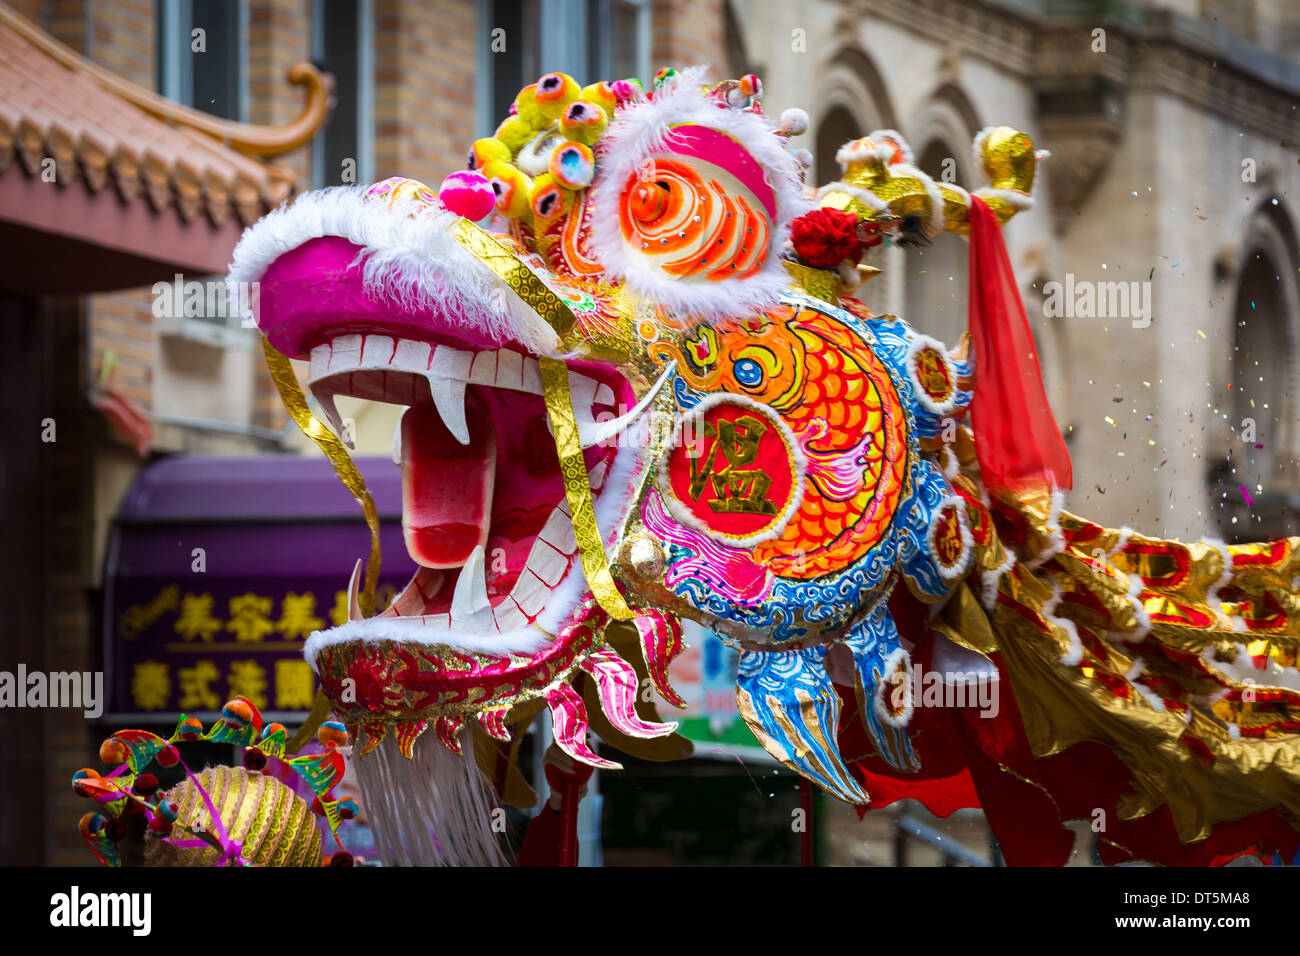 Traditional Chinese Dragon parades at the Lunar New Year Festival in Chinatown. - Stock Image